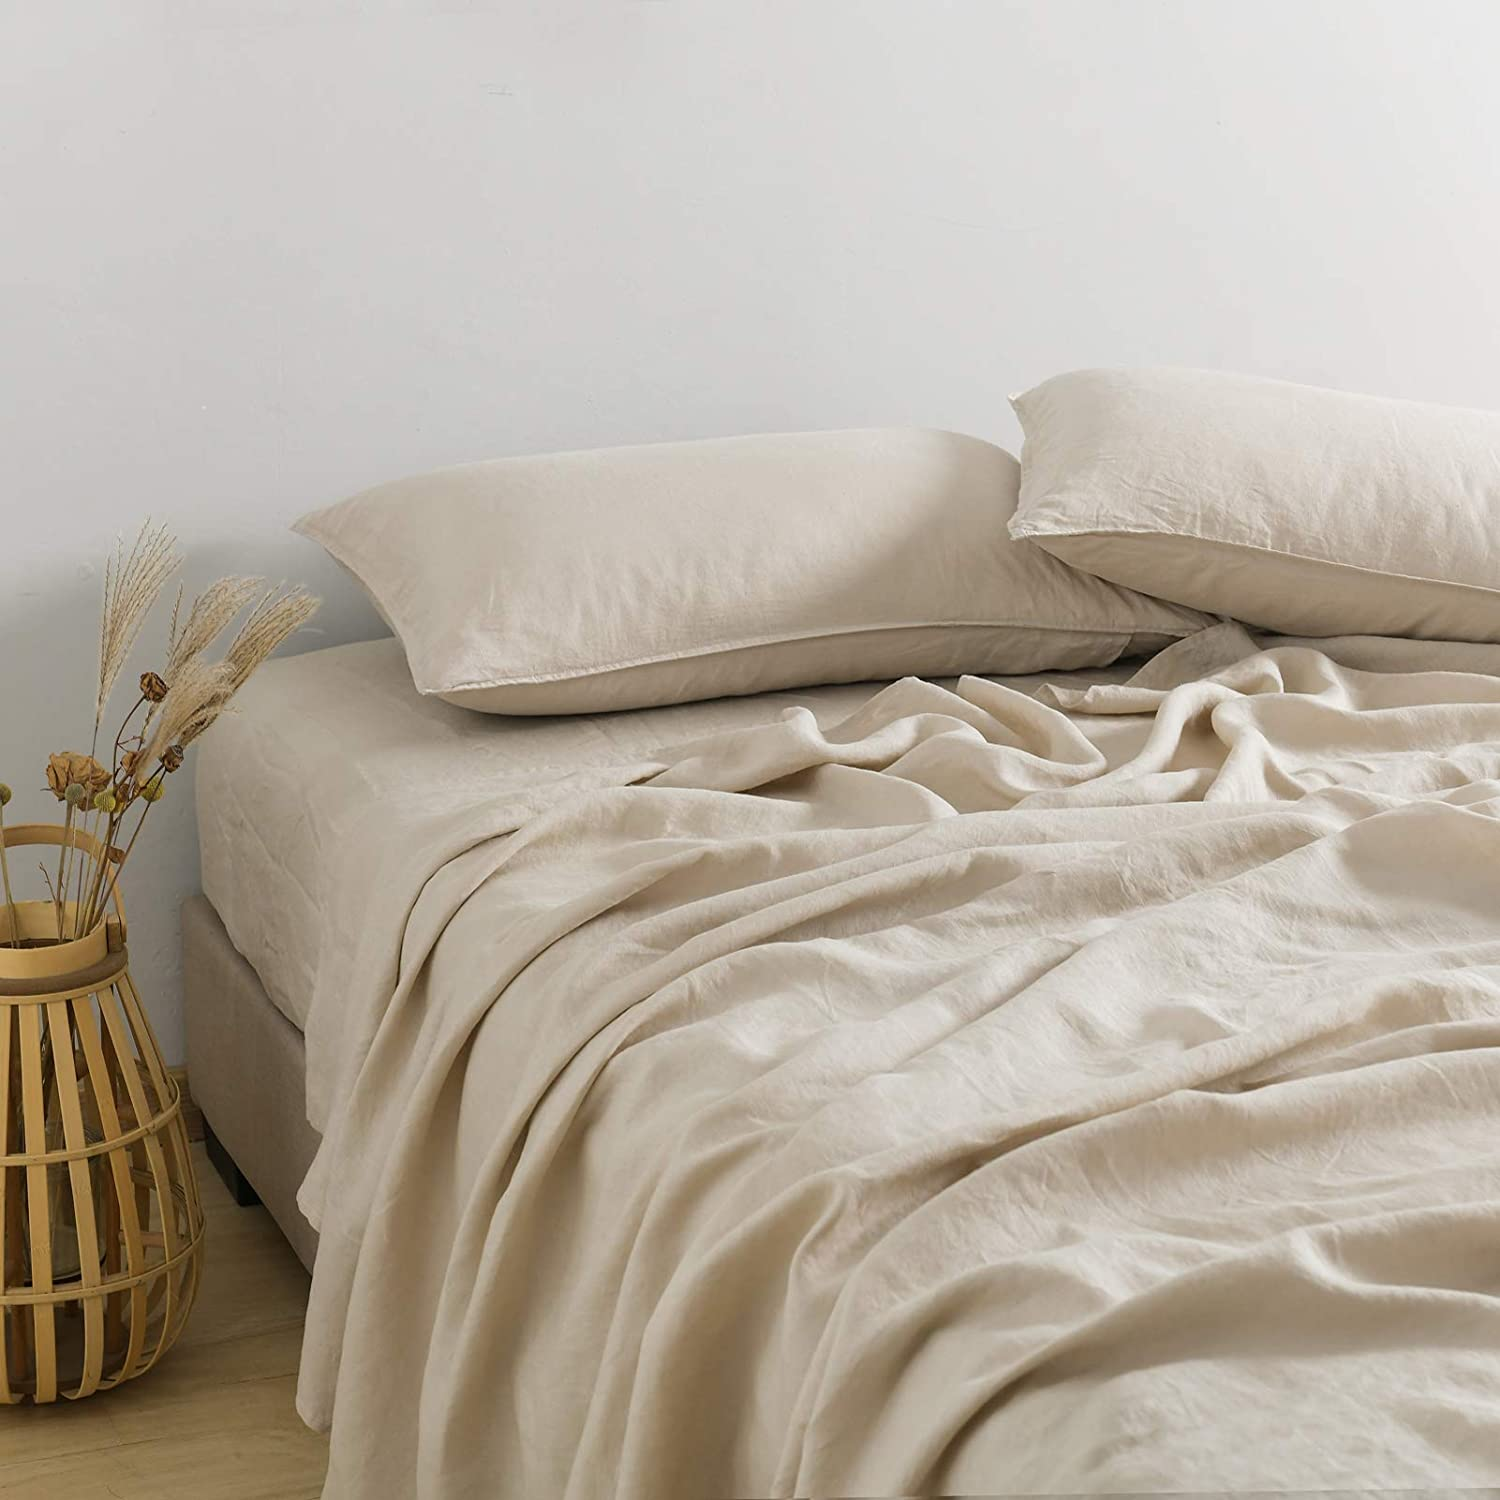 PANDATEX 100% free shipping Natural French Linen Sheets It is very popular Fl 1 Piece Set– 4